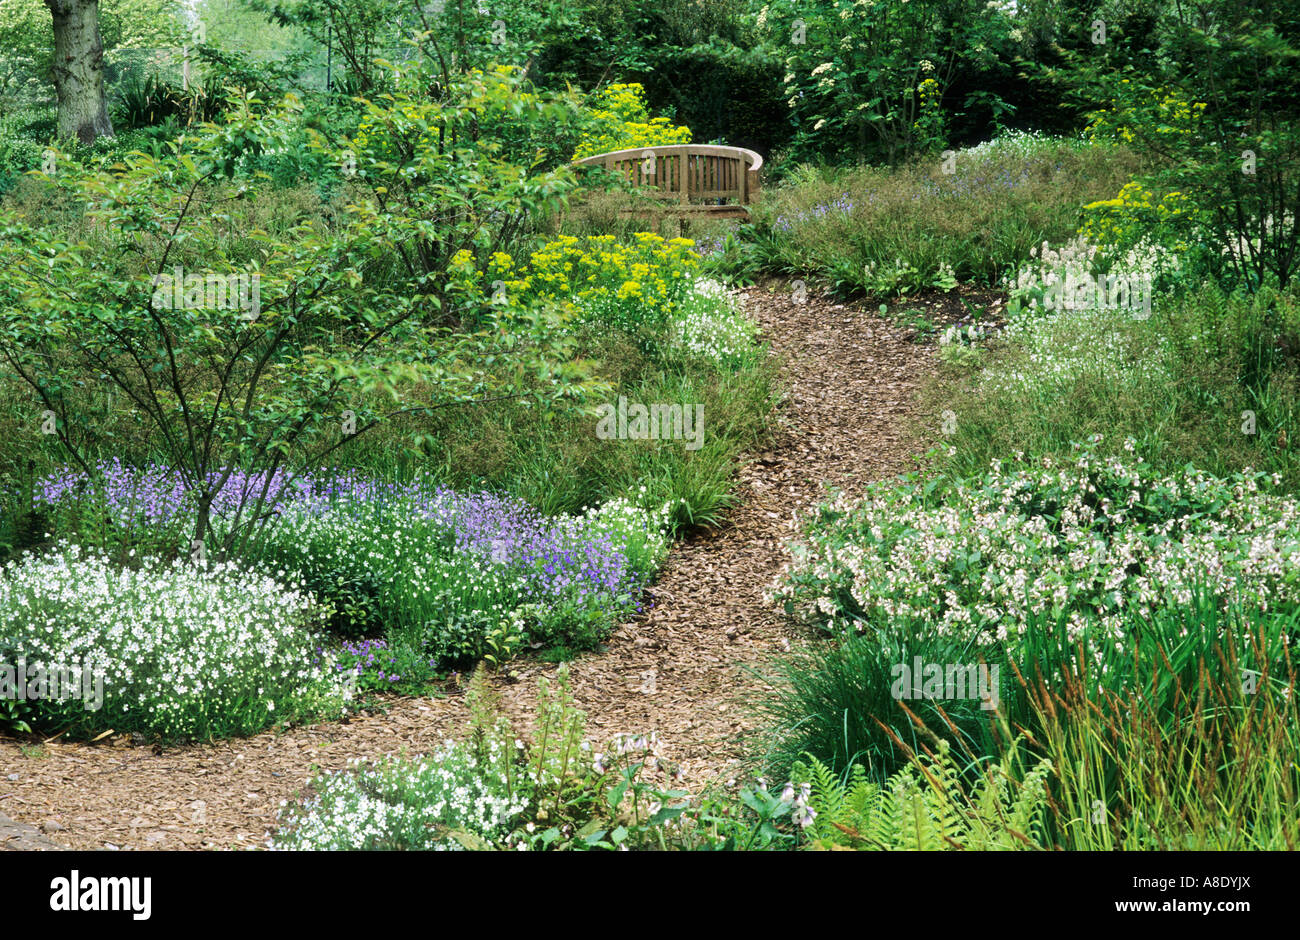 Woodland Garden, Bark, Wood Chip Path, Symphytum, Pulmonaria, Wooden Bench,  Shade Ground Cover, Shady Paths Bench